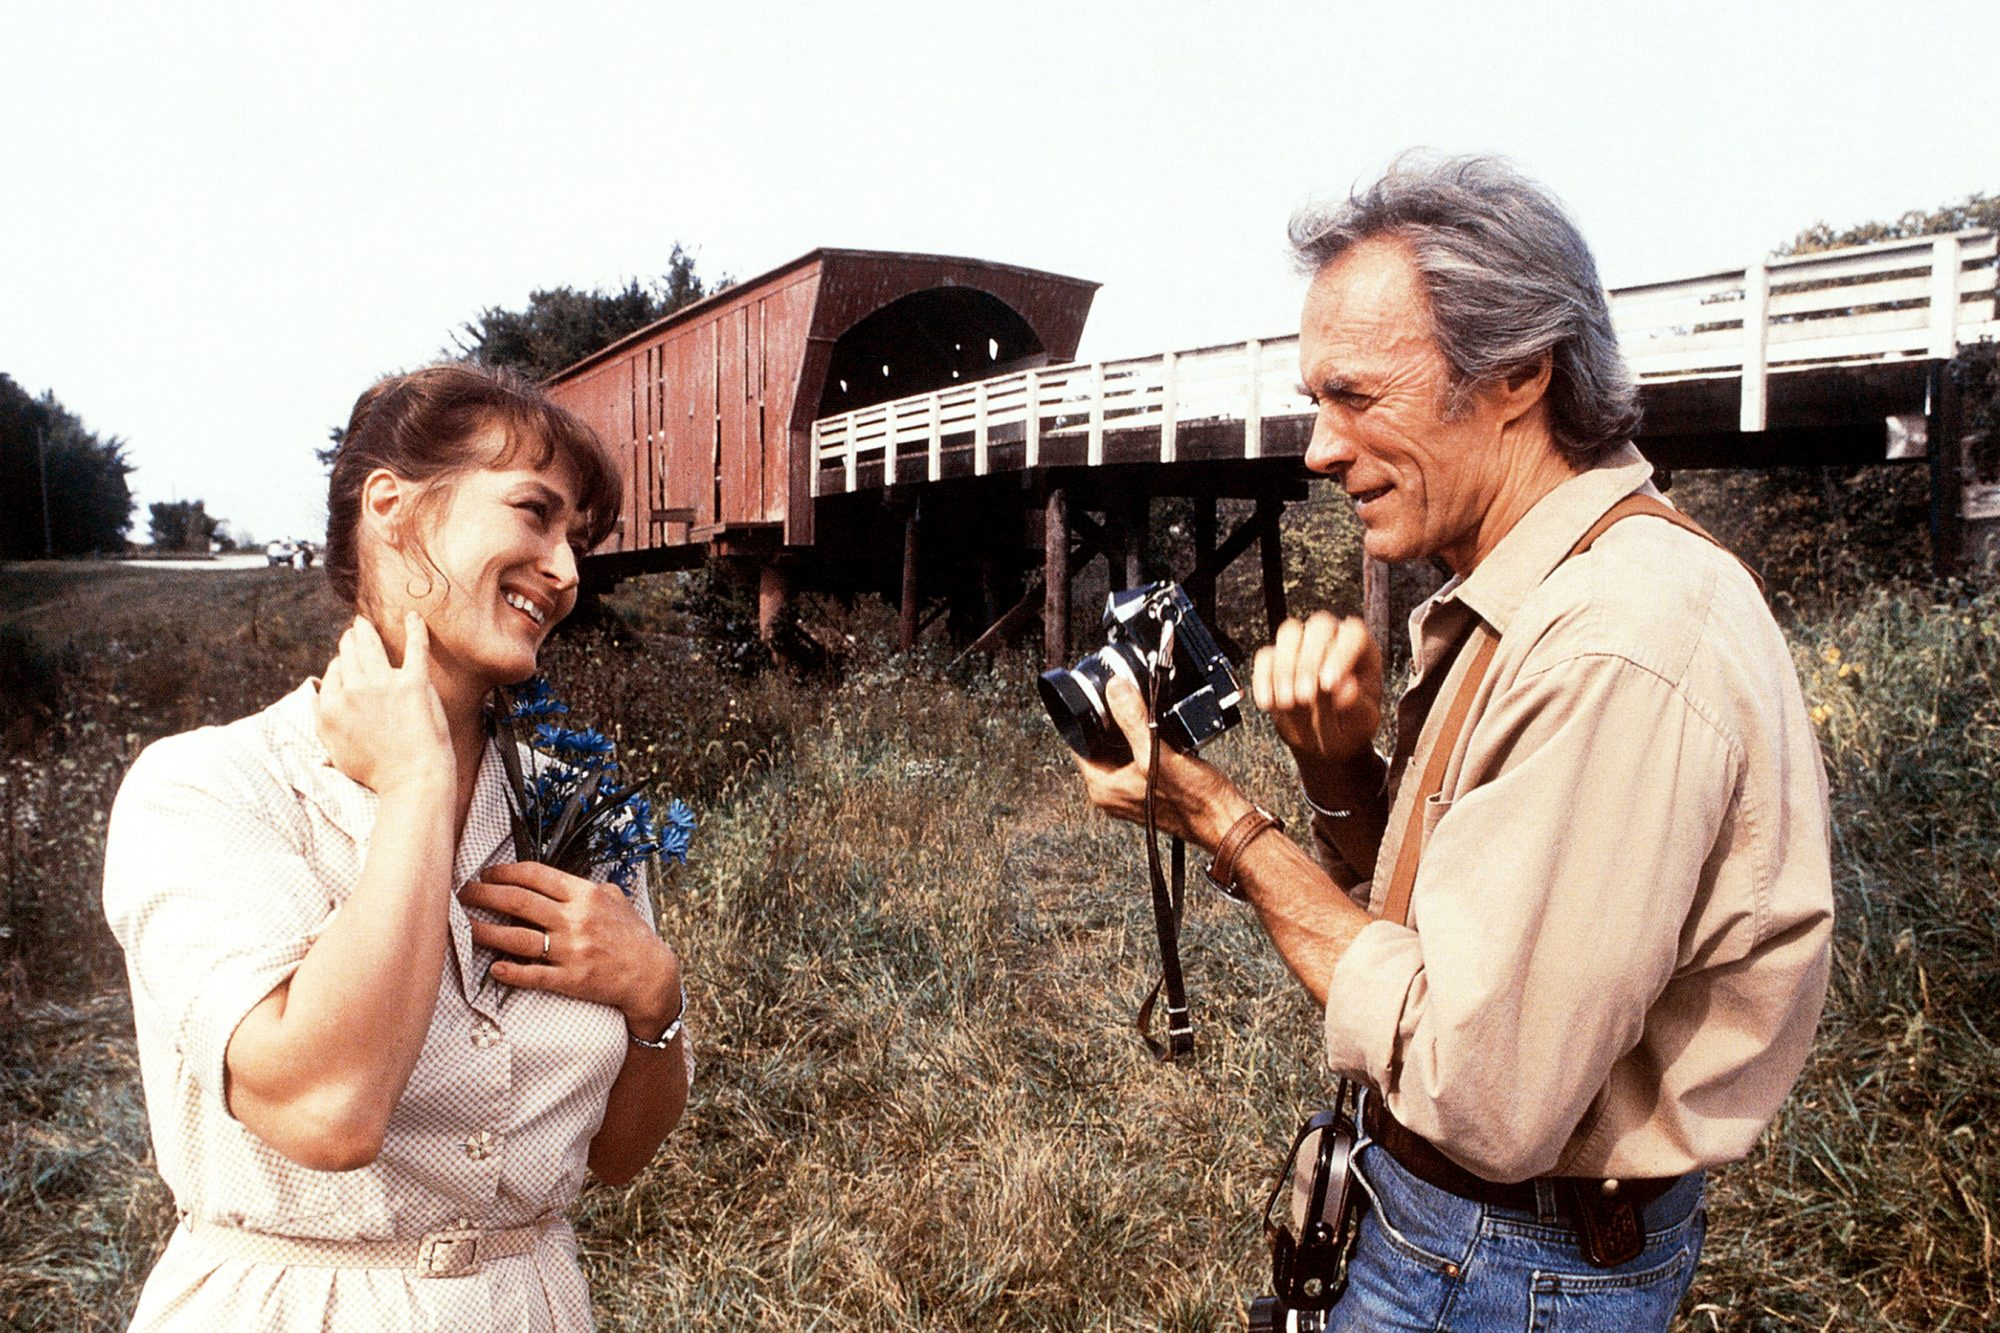 THE BRIDGES OF MADISON COUNTY, from left: Meryl Streep, Clint Eastwood, 1995. ©Warner Brothers/court